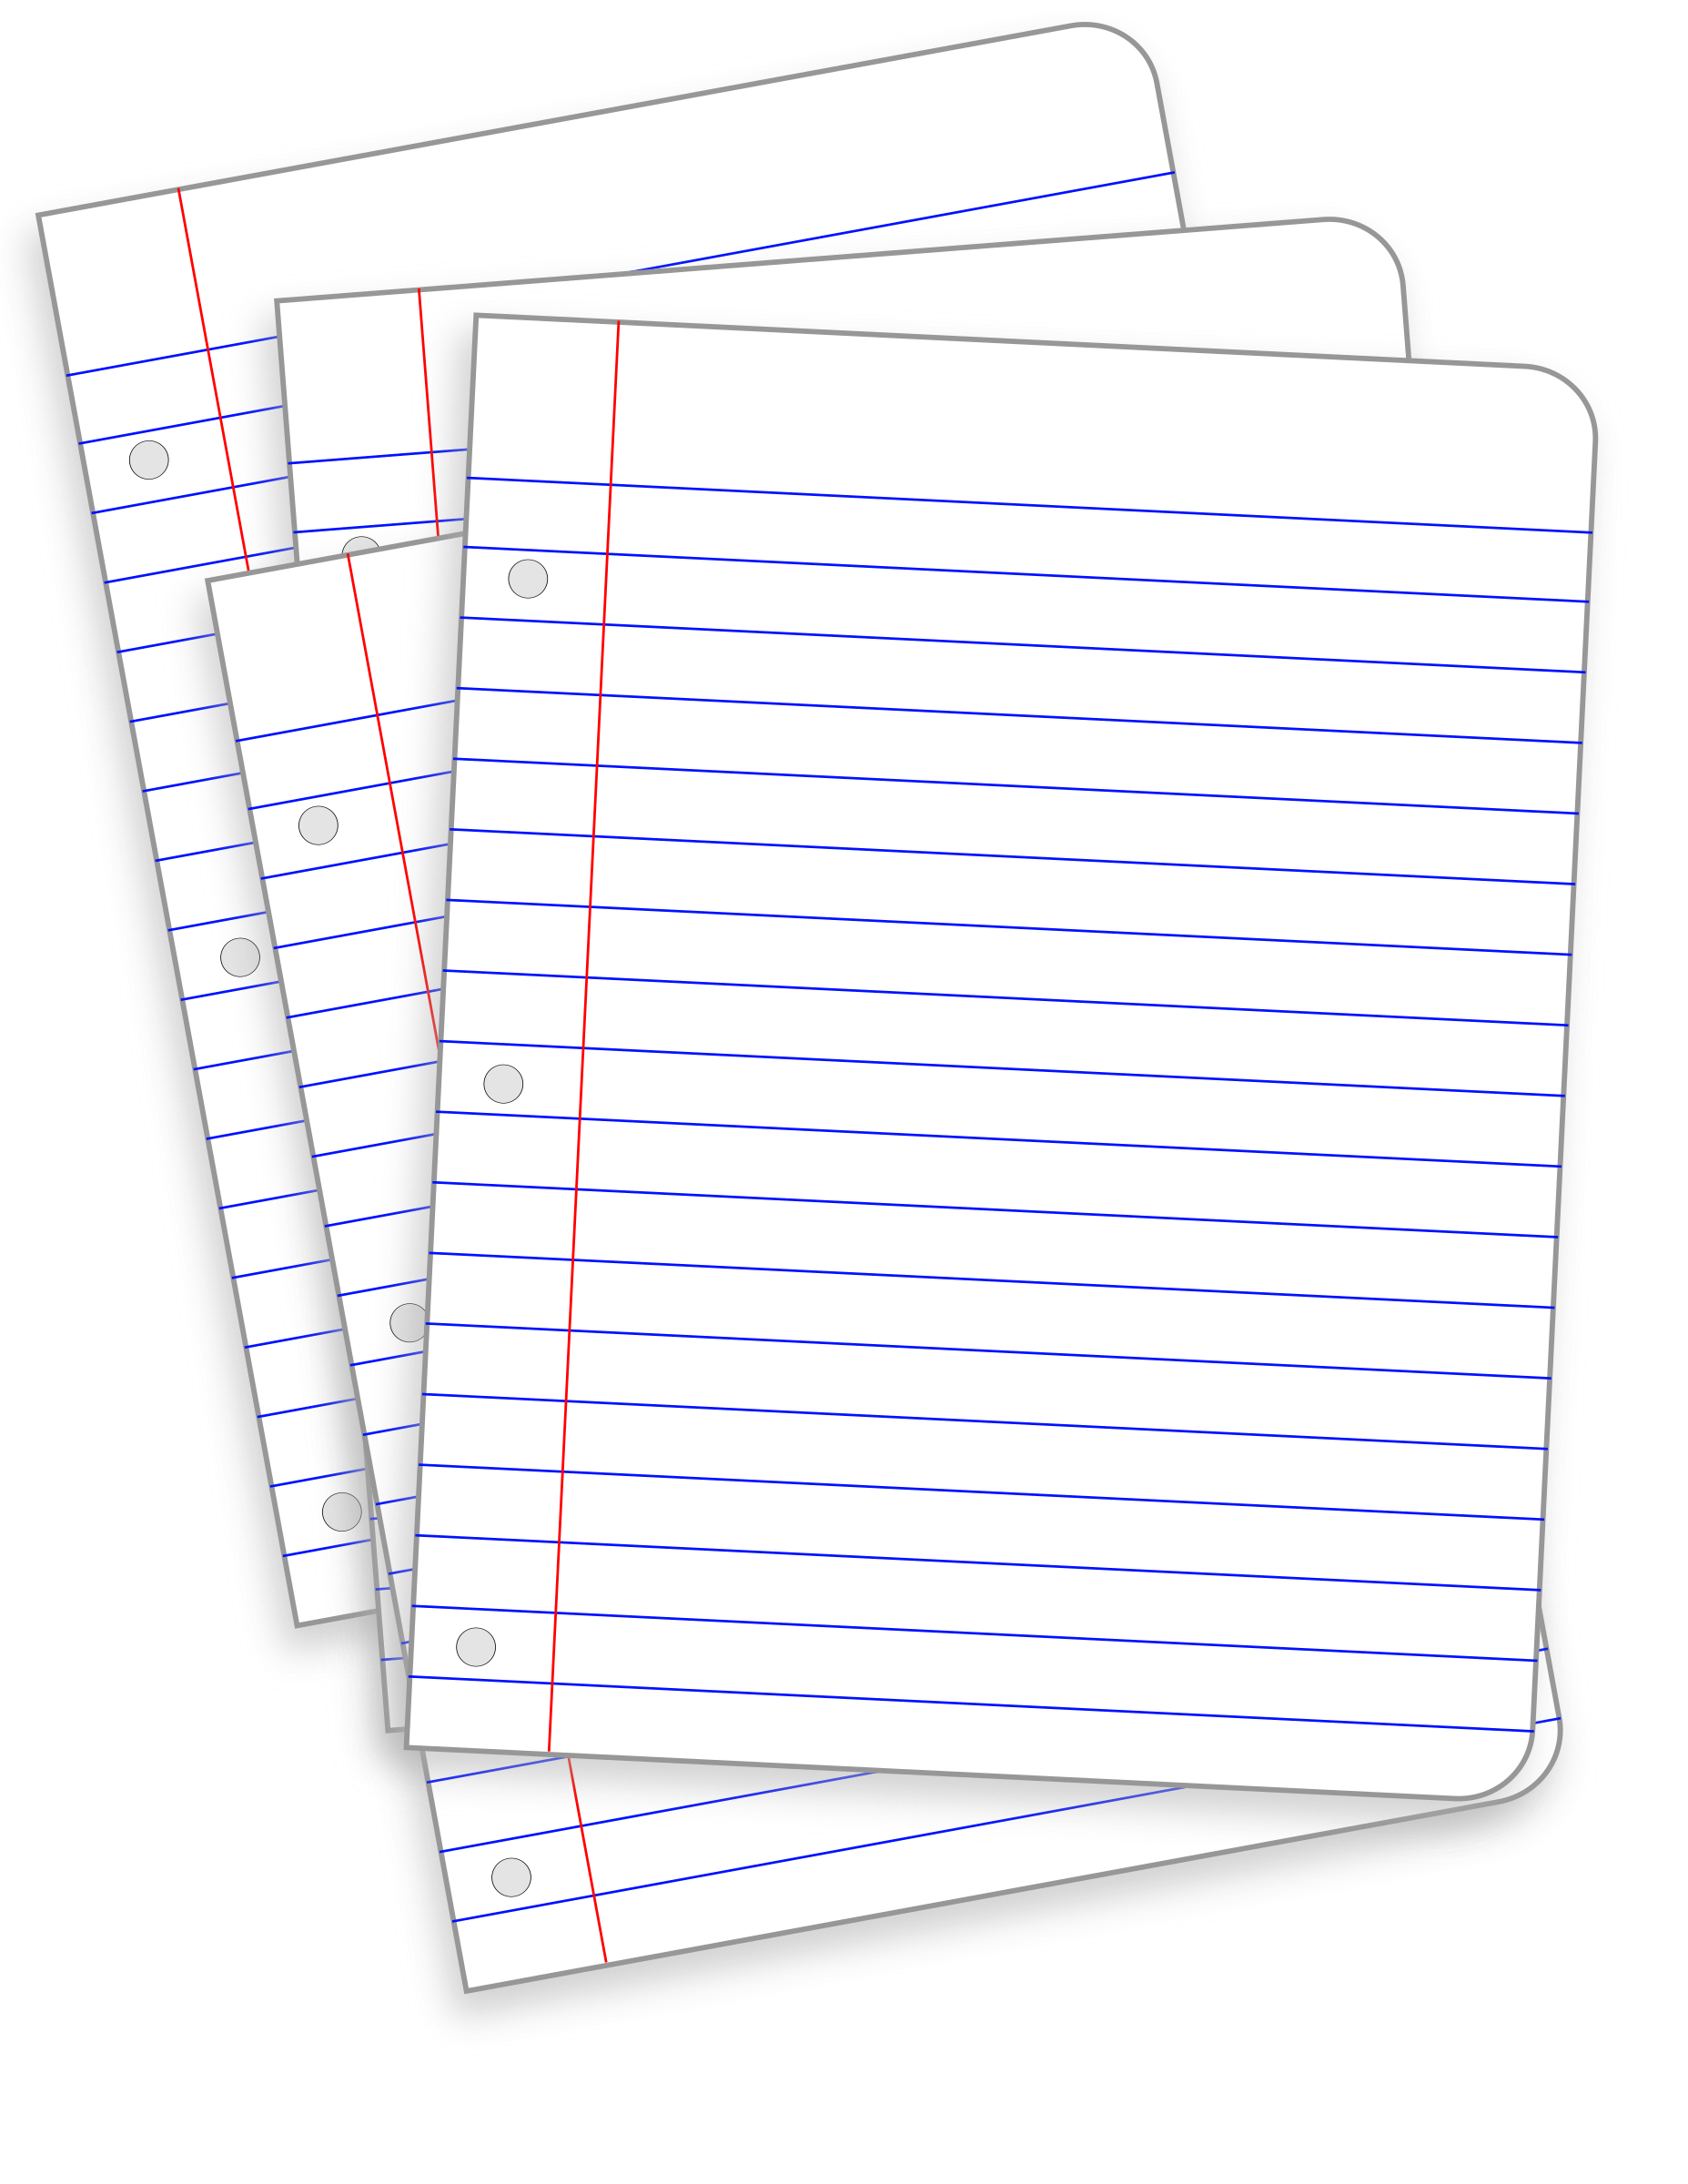 Messy lined papers big. Paper clipart line paper